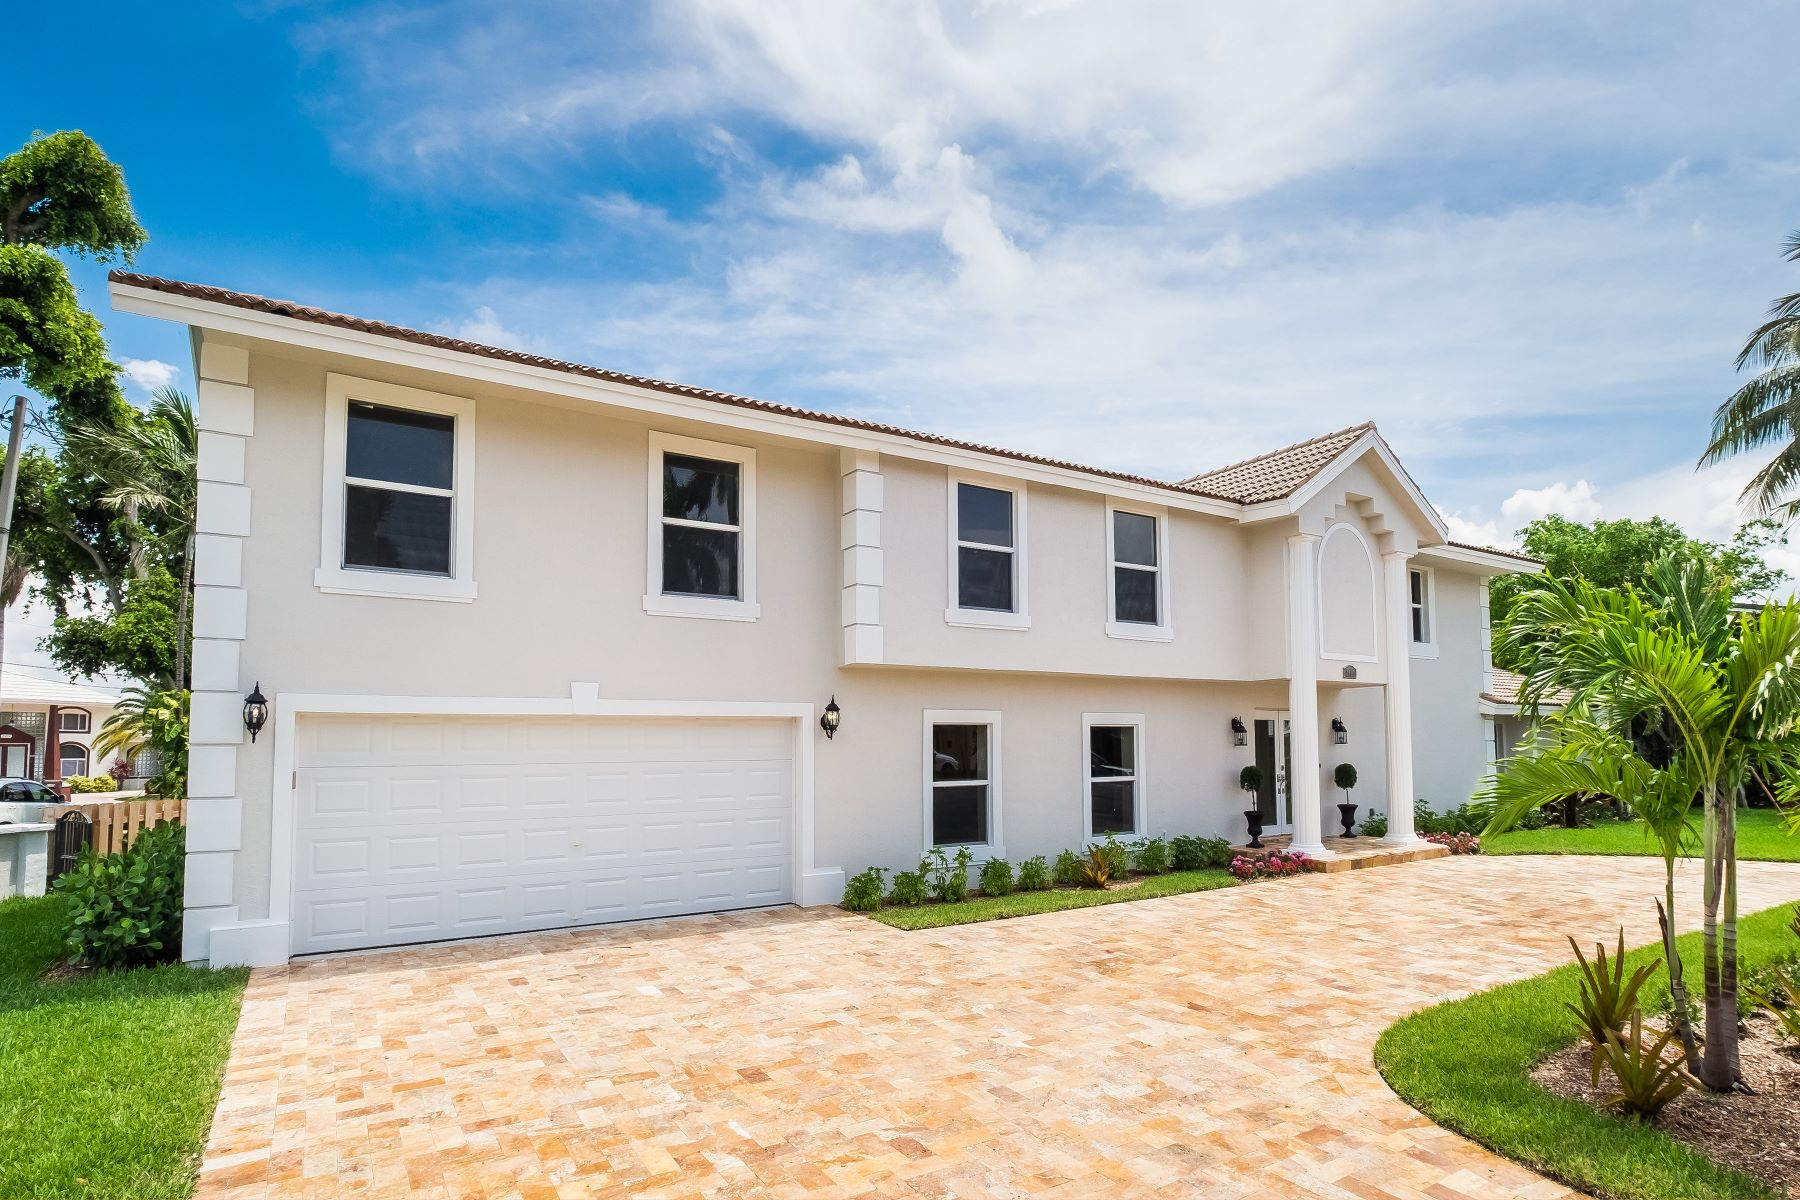 Single Family Homes for Sale at Pompano Beach, Florida 33062 United States